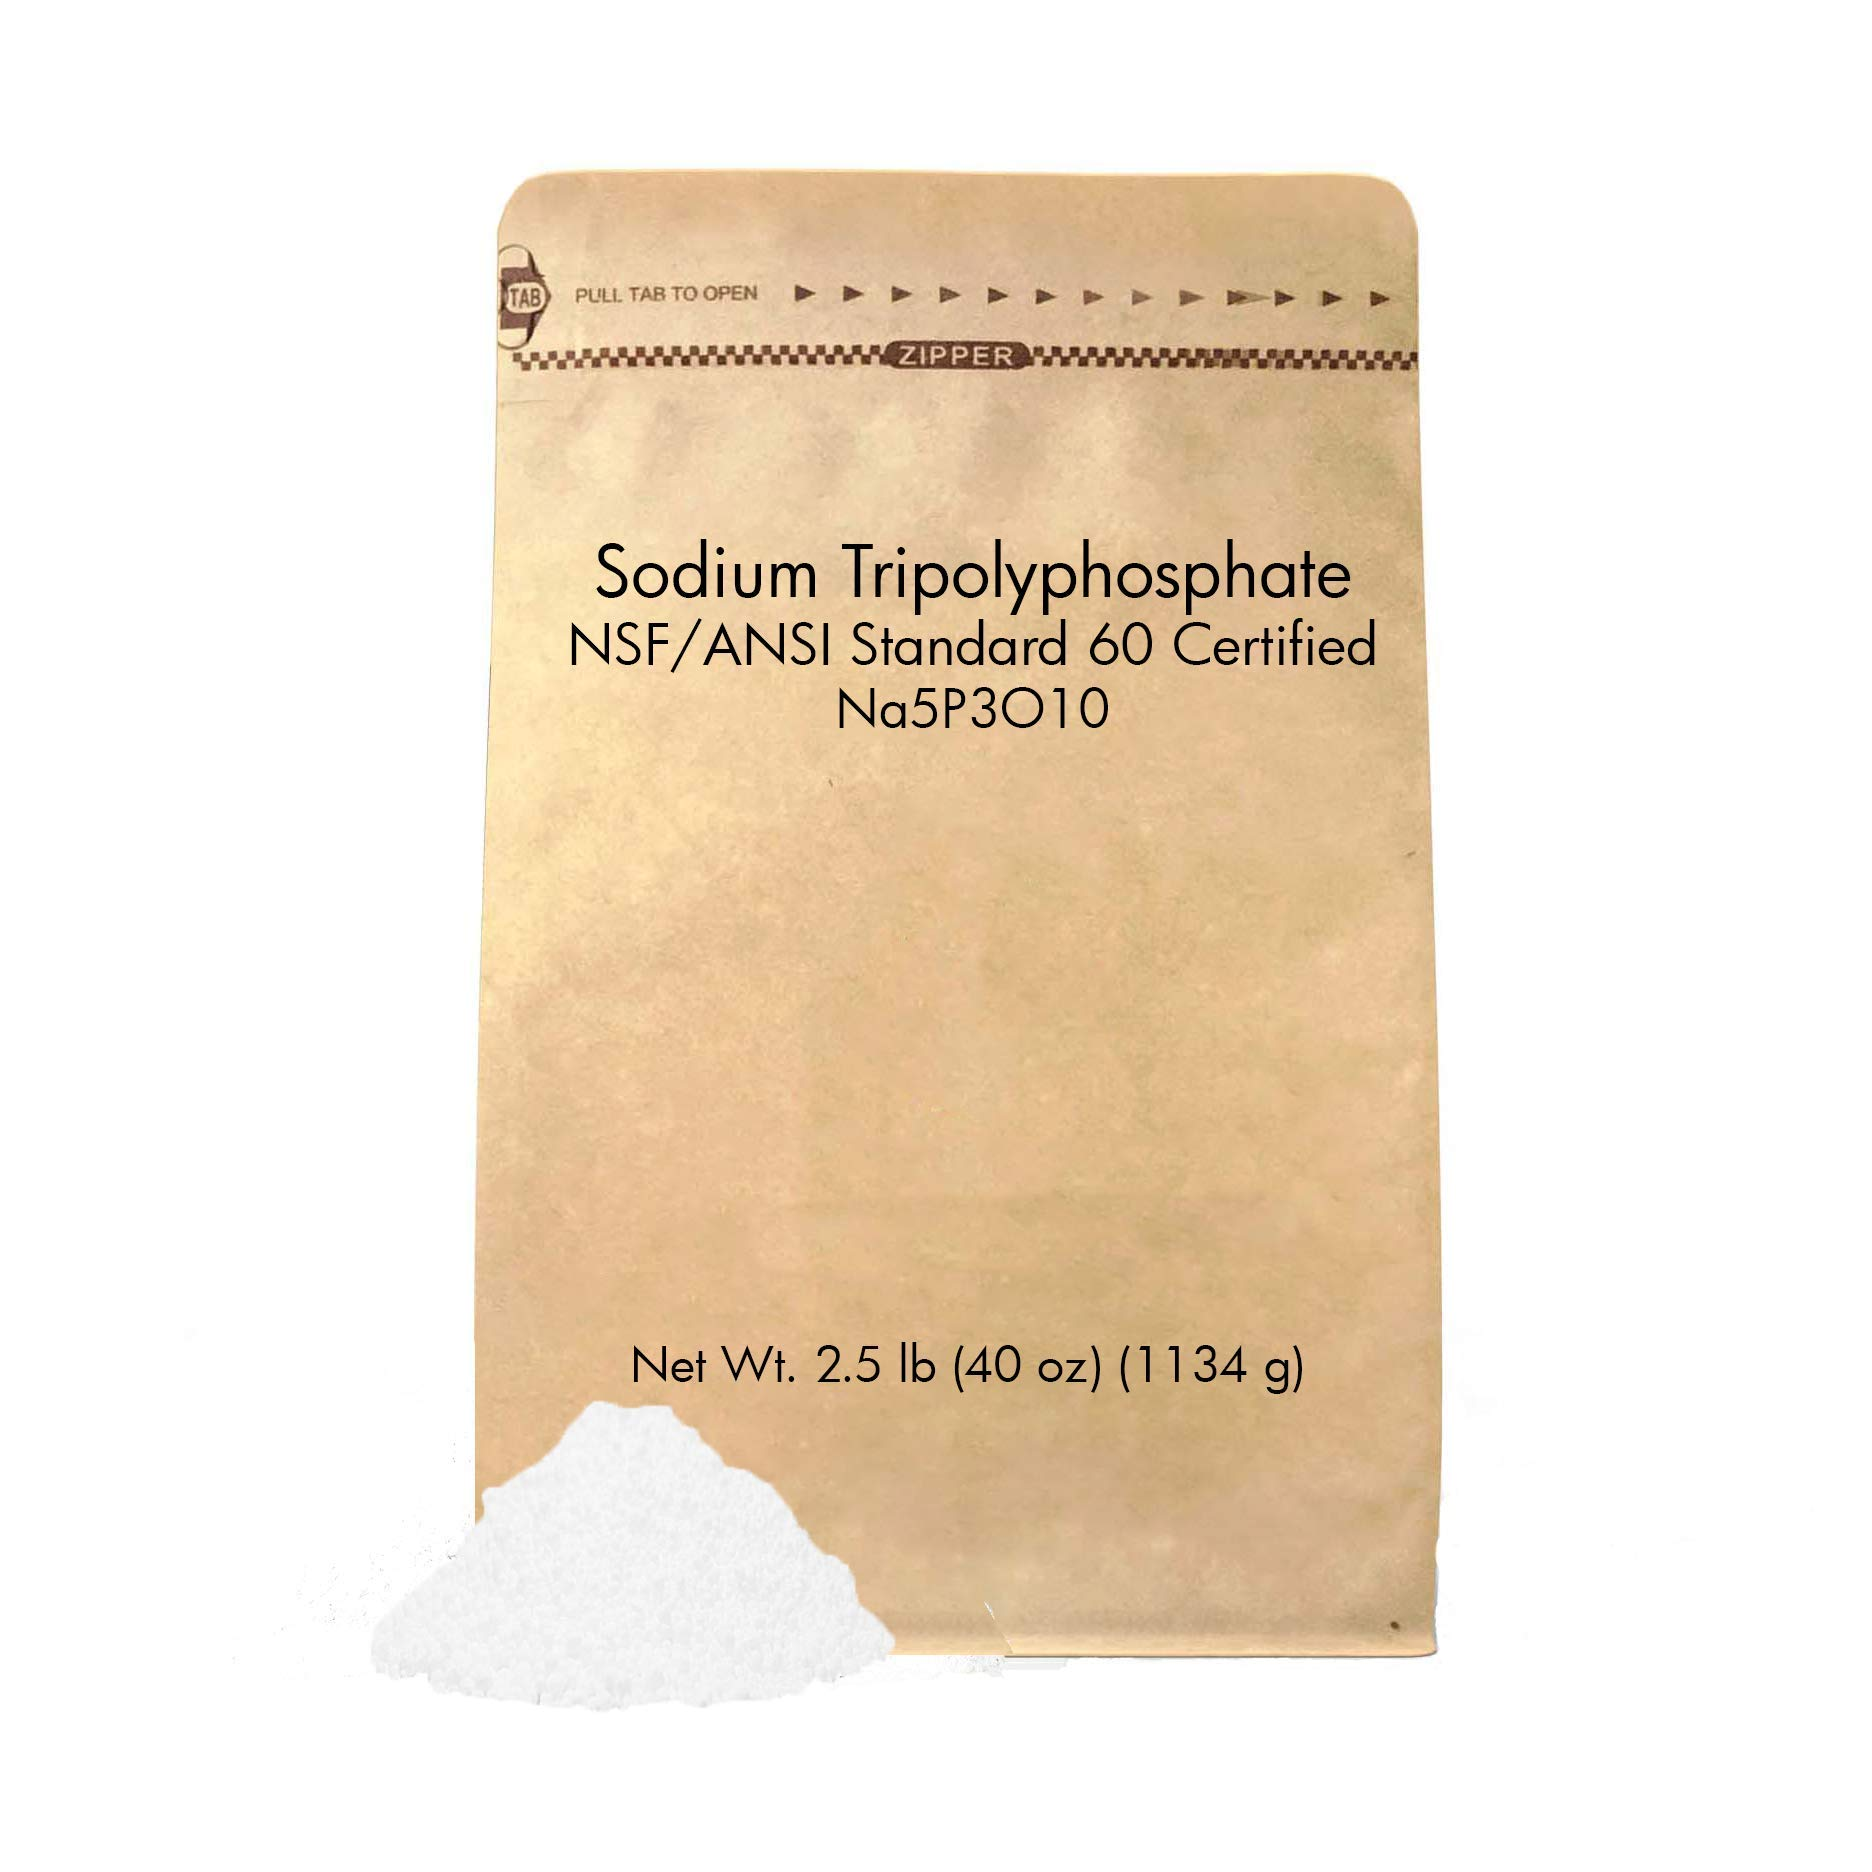 Sodium Tripolyphosphate (2.5 lb) by Pure Organic Ingredients, Eco-Friendly Packaging, Helps Soften Water (Also Available in 0.5 lb, 1 lb, 50 lb)